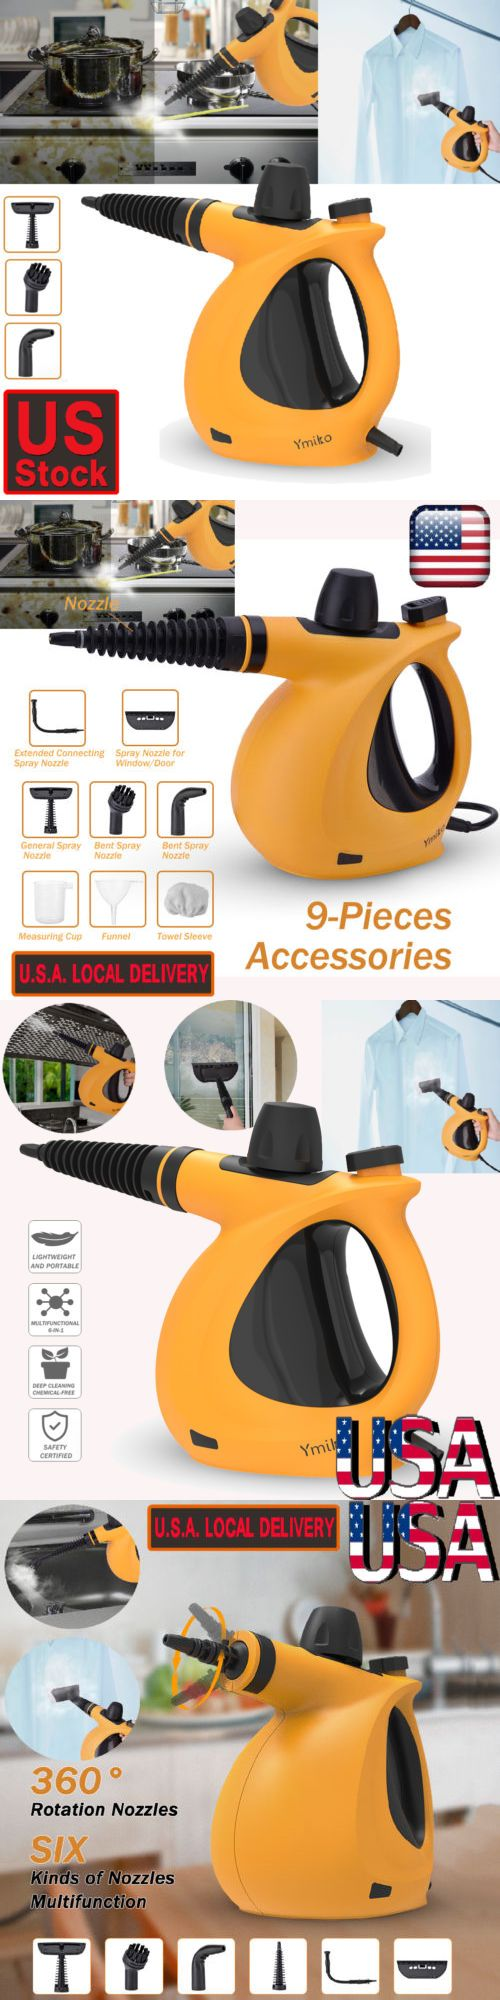 Carpet Steamers 79656 Multifunction Handheld 1050w Steam Cleaner Vapor Cleaner Car Seats Stain Removal Buy It No Stain Remover Carpet Clean Car Seats Stains